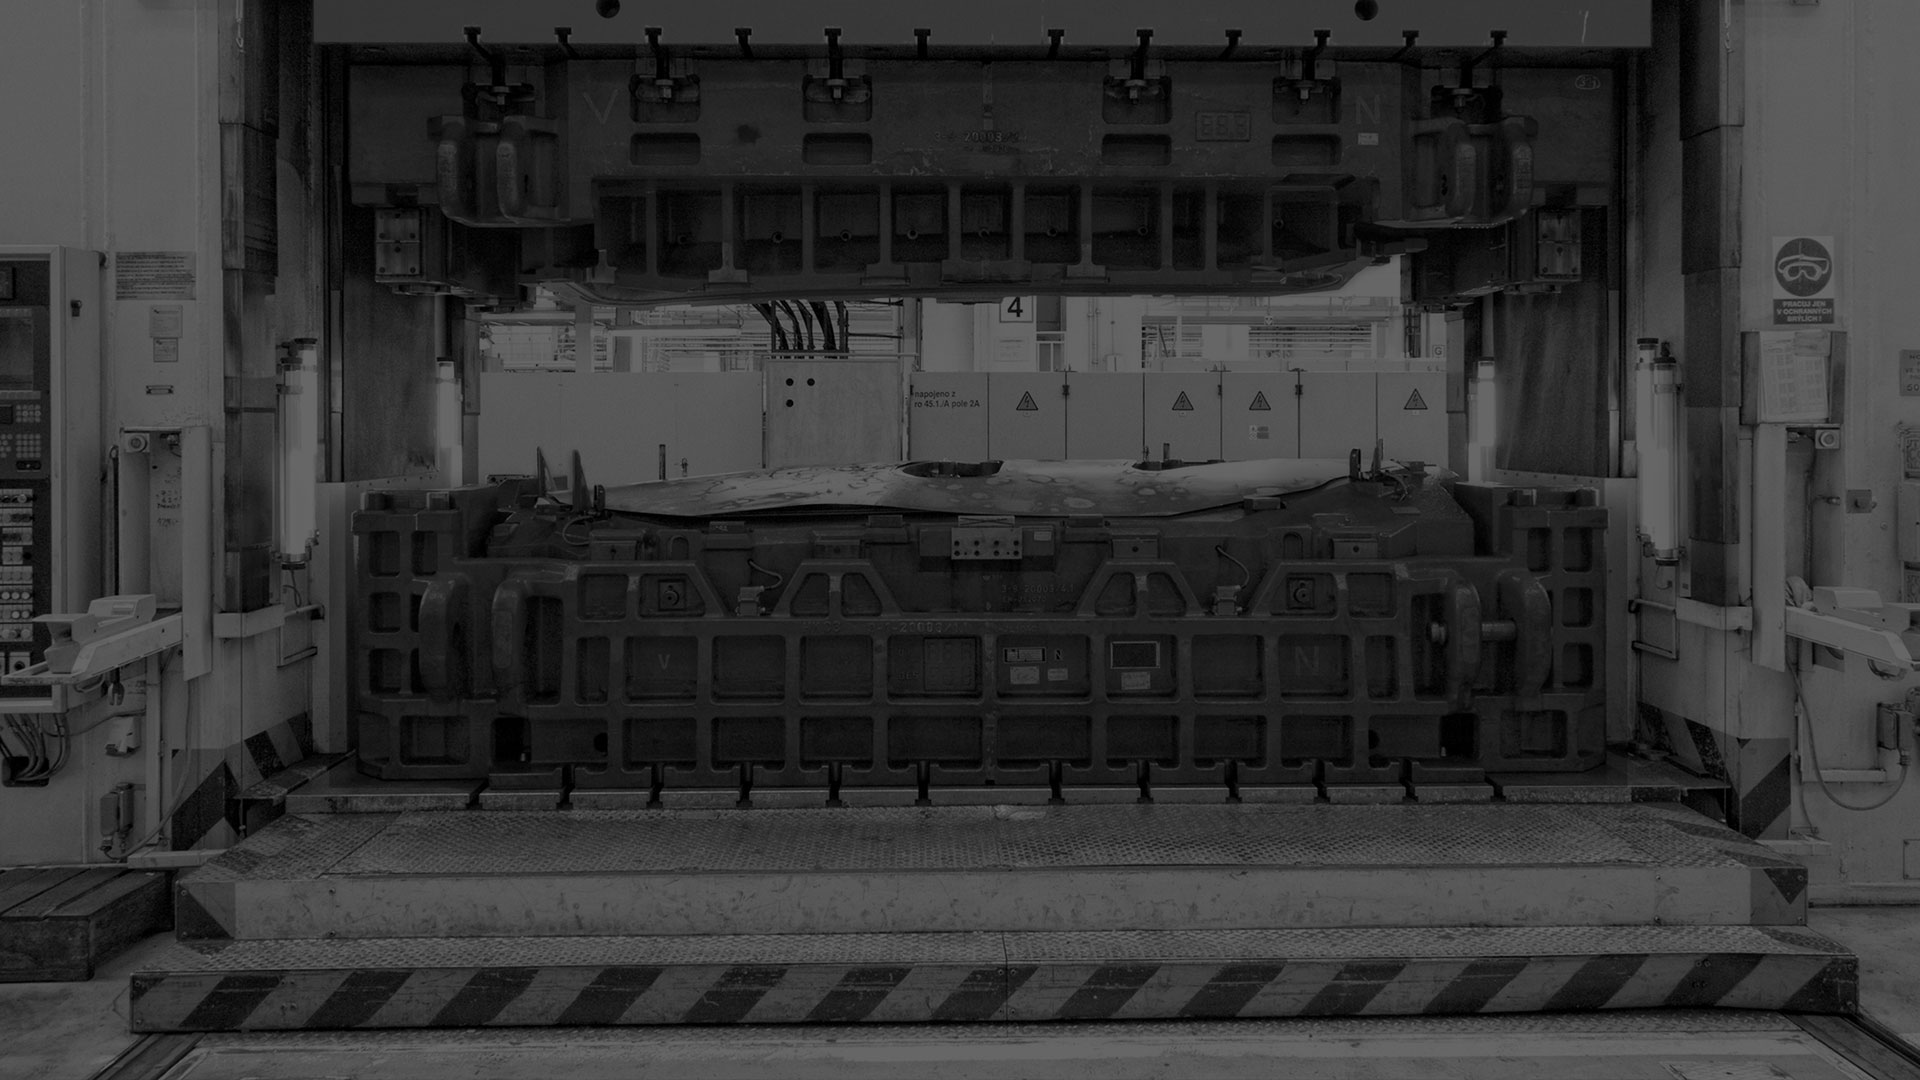 A darkened black and white image of a press system.